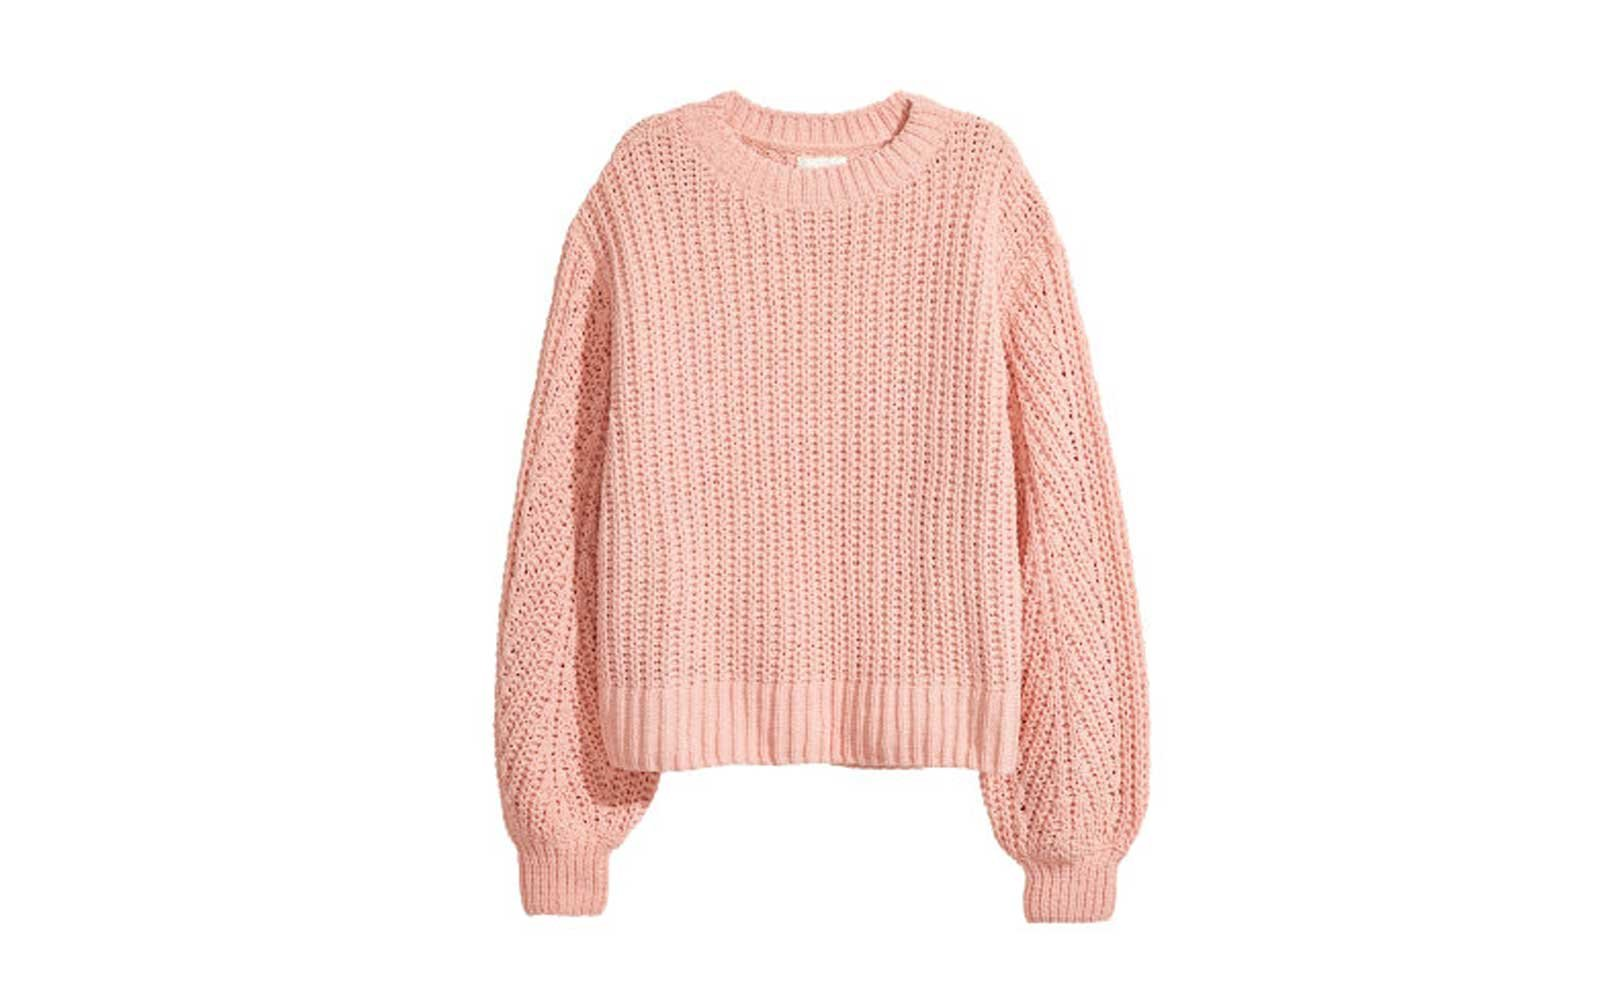 22 Cute Oversized Sweaters for Women  5d3db37e5